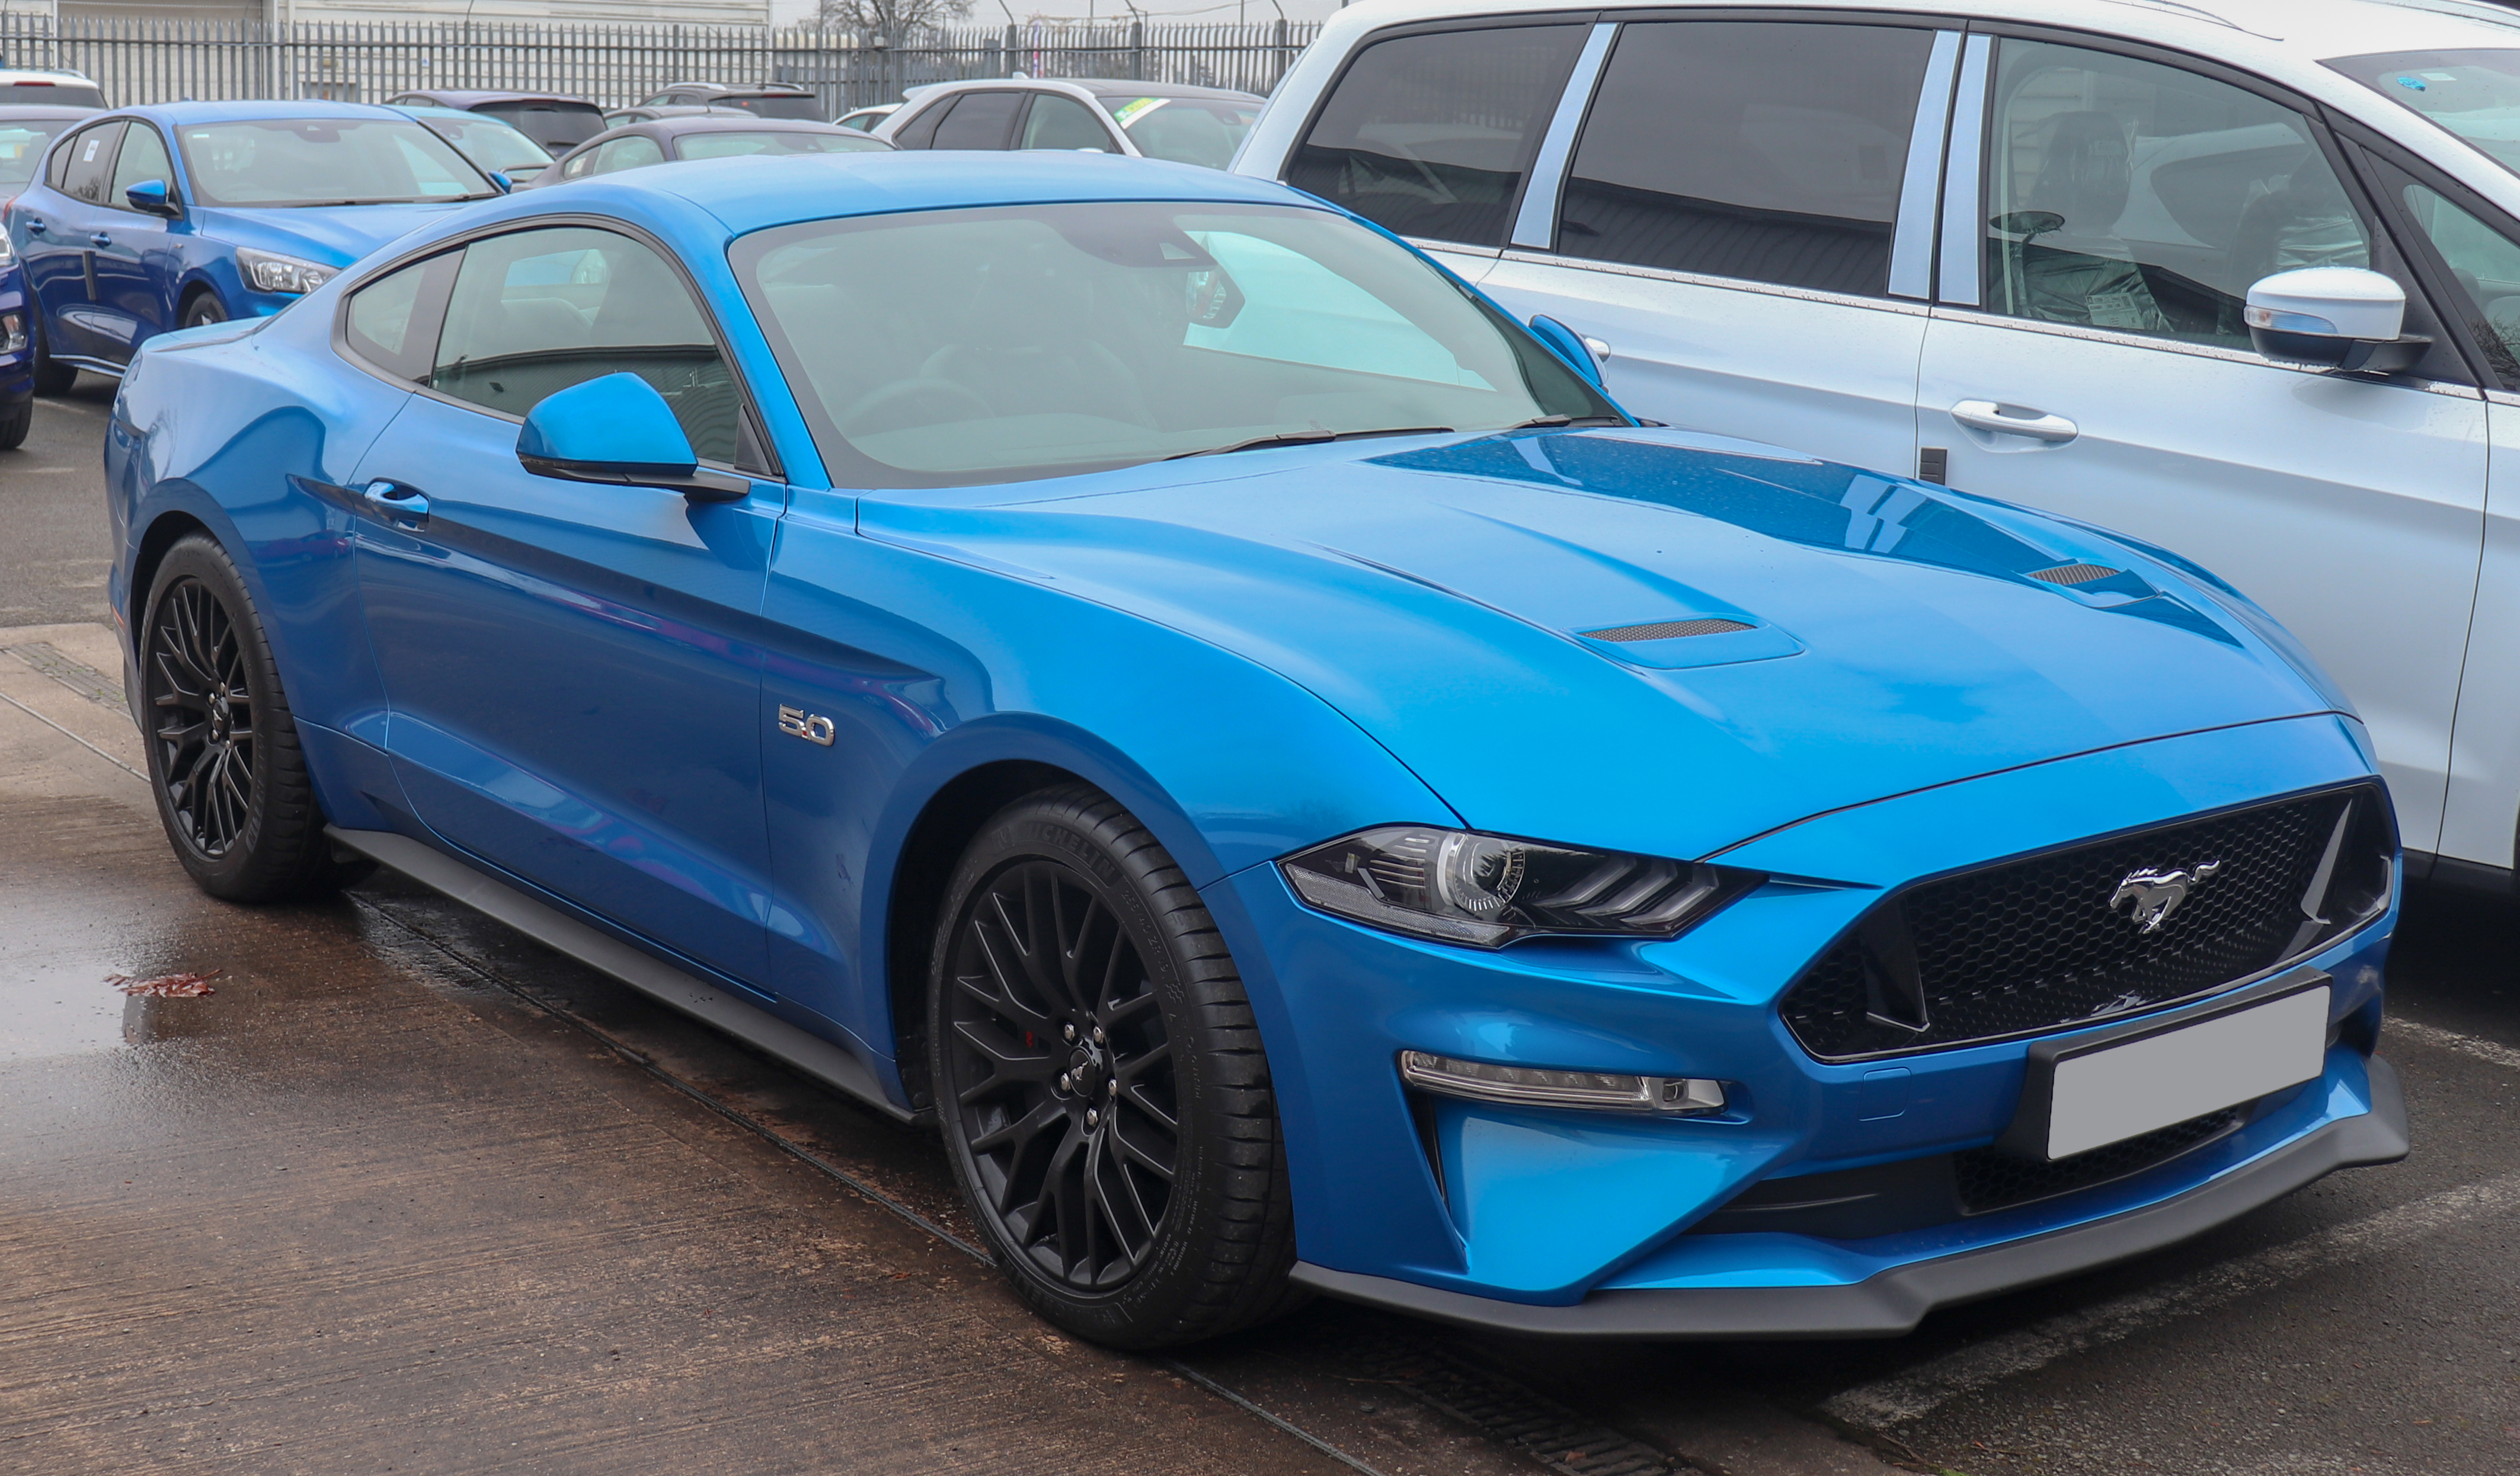 File:2019 Ford Mustang GT 5.0 facelift Front.jpg ...